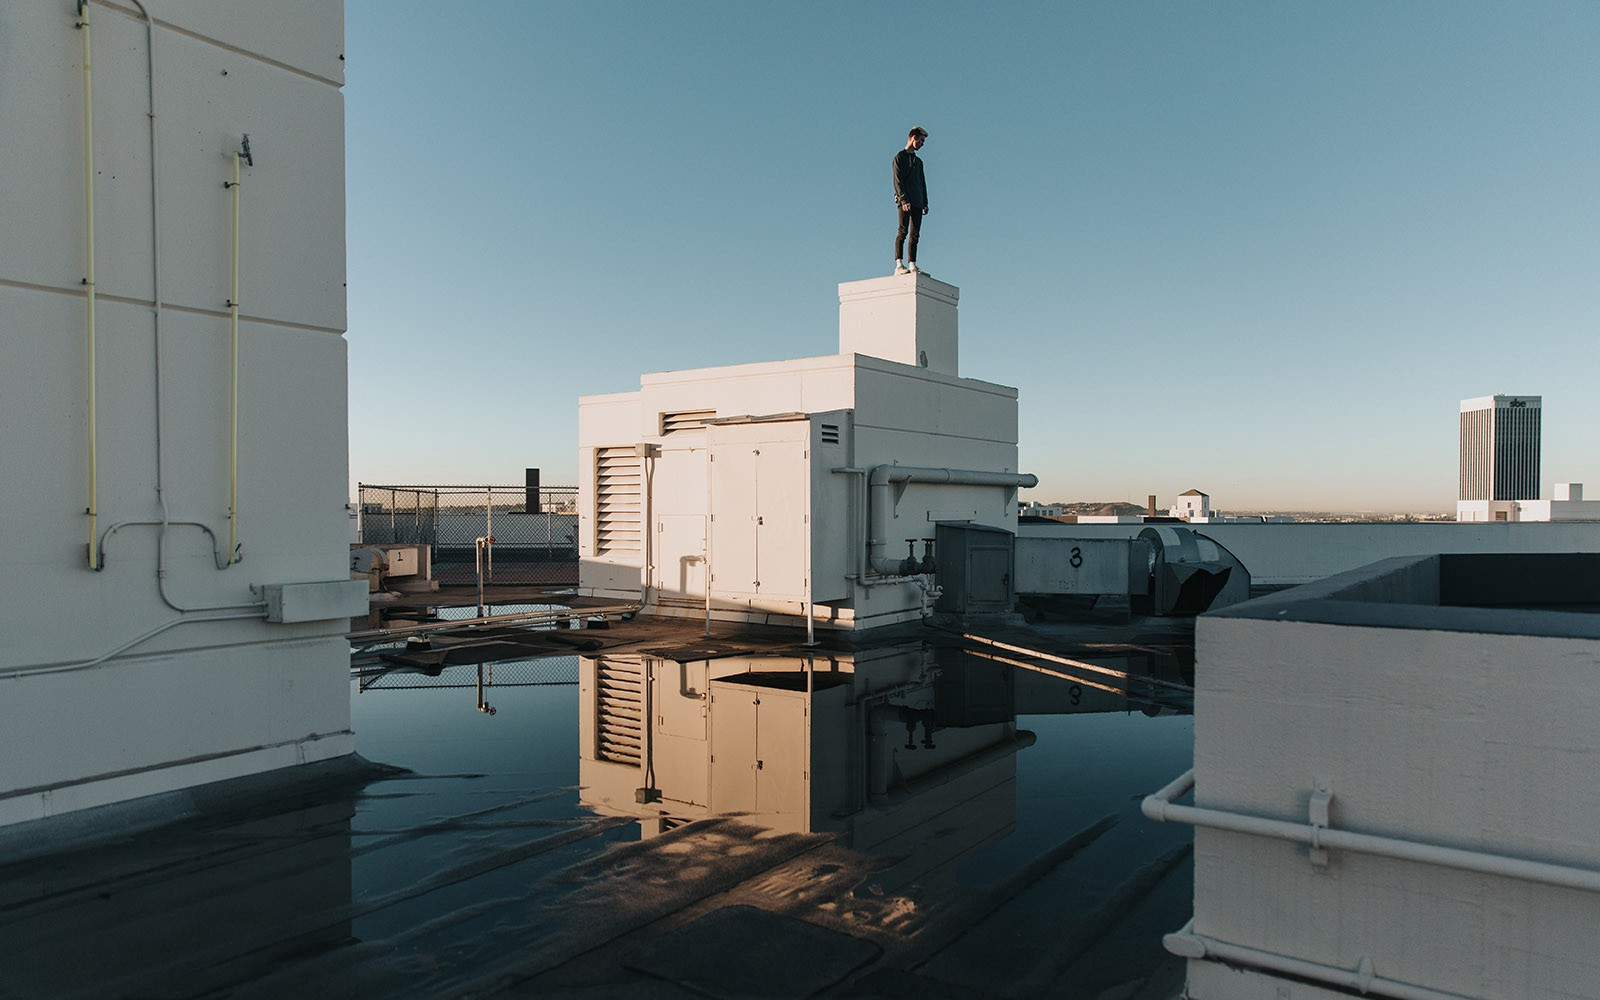 Man standing on top of a building